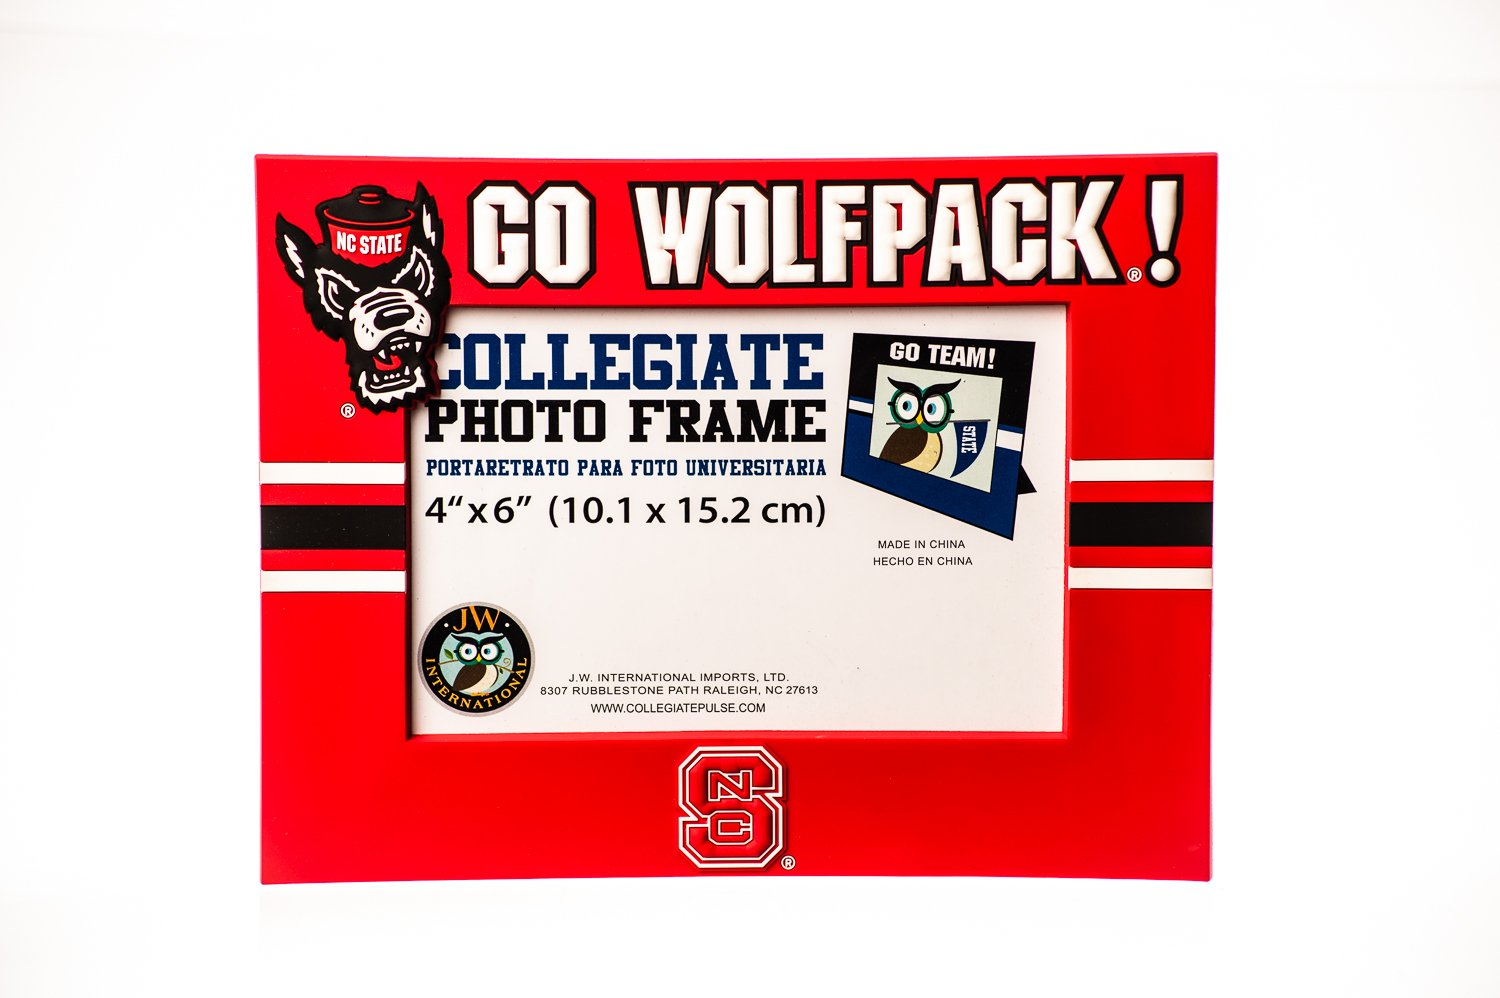 Amazon.com : Collegiate Pulse North Carolina State Wolfpack NCAA PVC Photo Frame : Sports & Outdoors